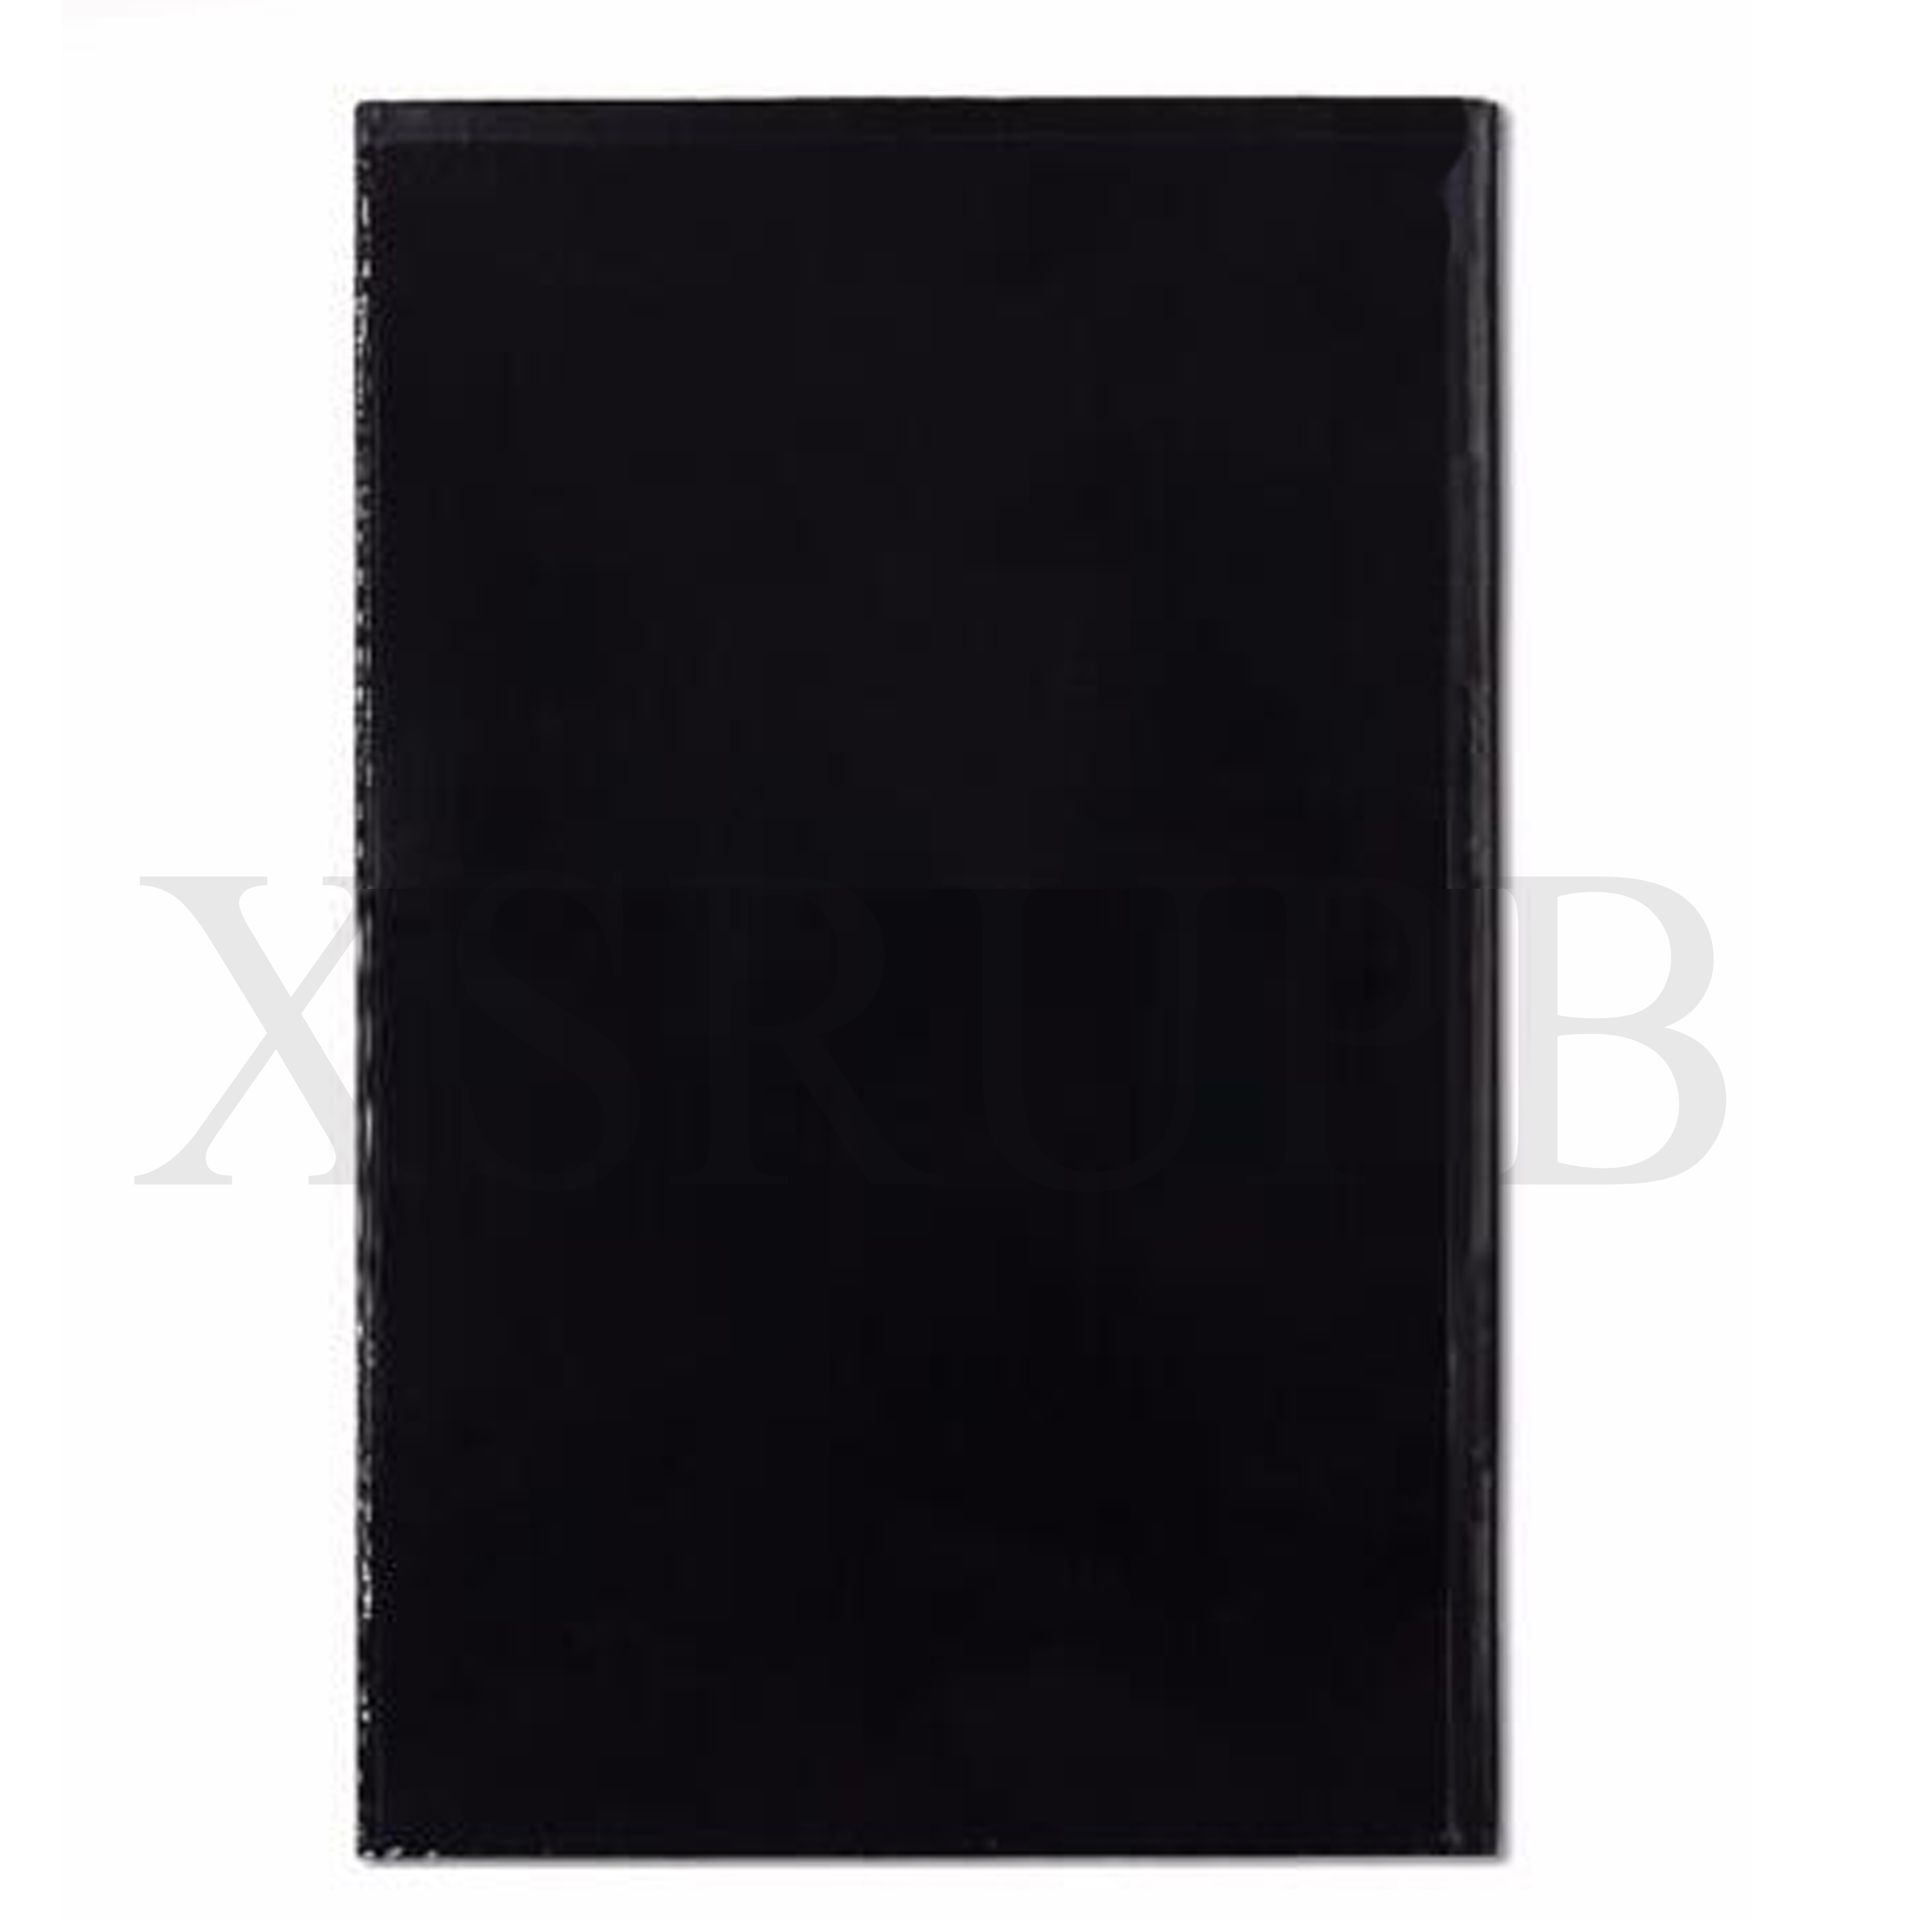 7 LCD diaplay 1280*800 for Oculus Rift DK1 LCD display Screen7 LCD diaplay 1280*800 for Oculus Rift DK1 LCD display Screen